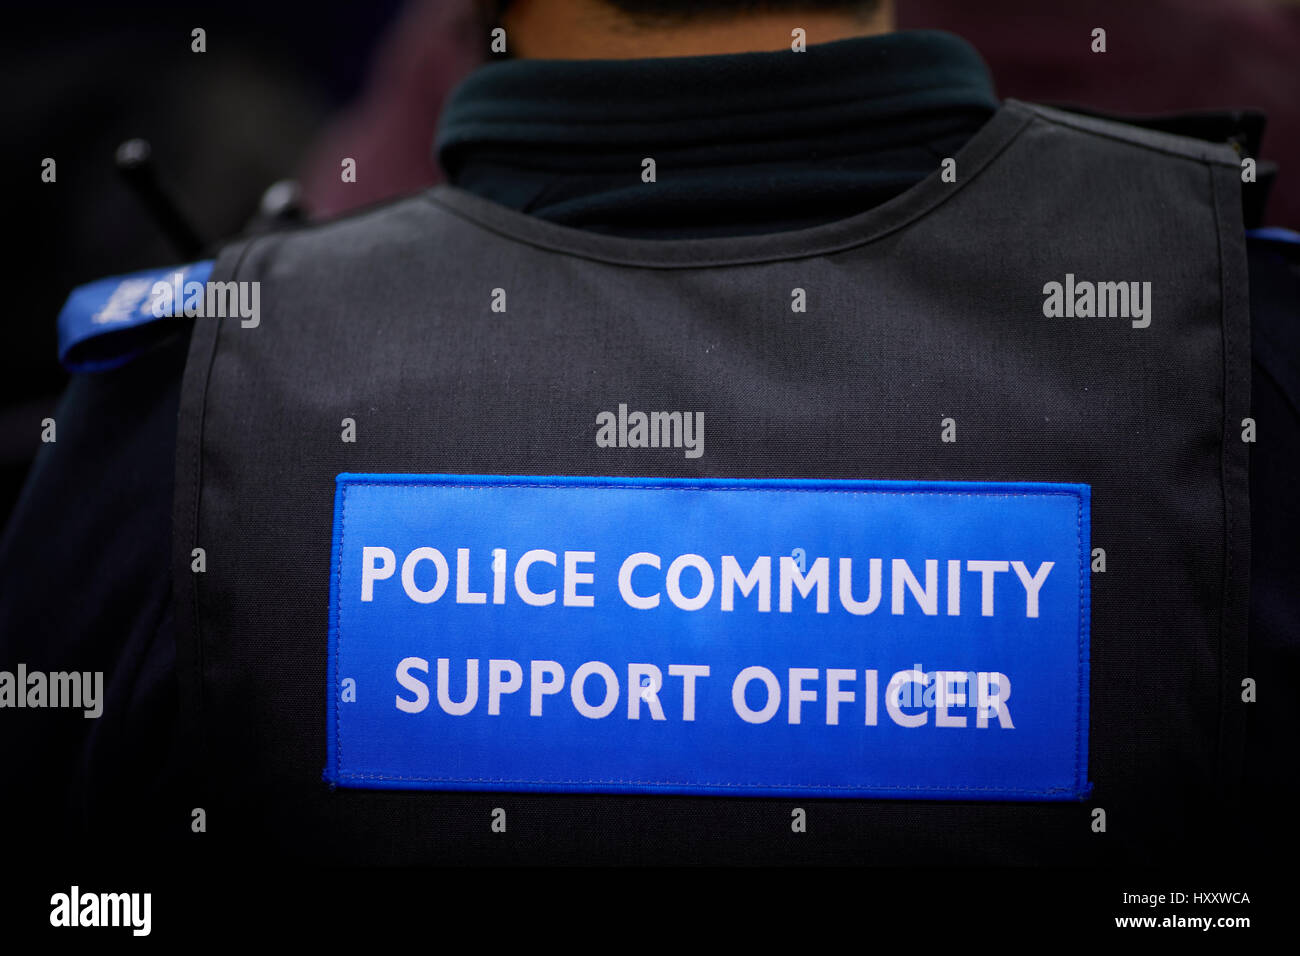 Police Community Support Officer, PCSO  badge on the back of a vest. - Stock Image